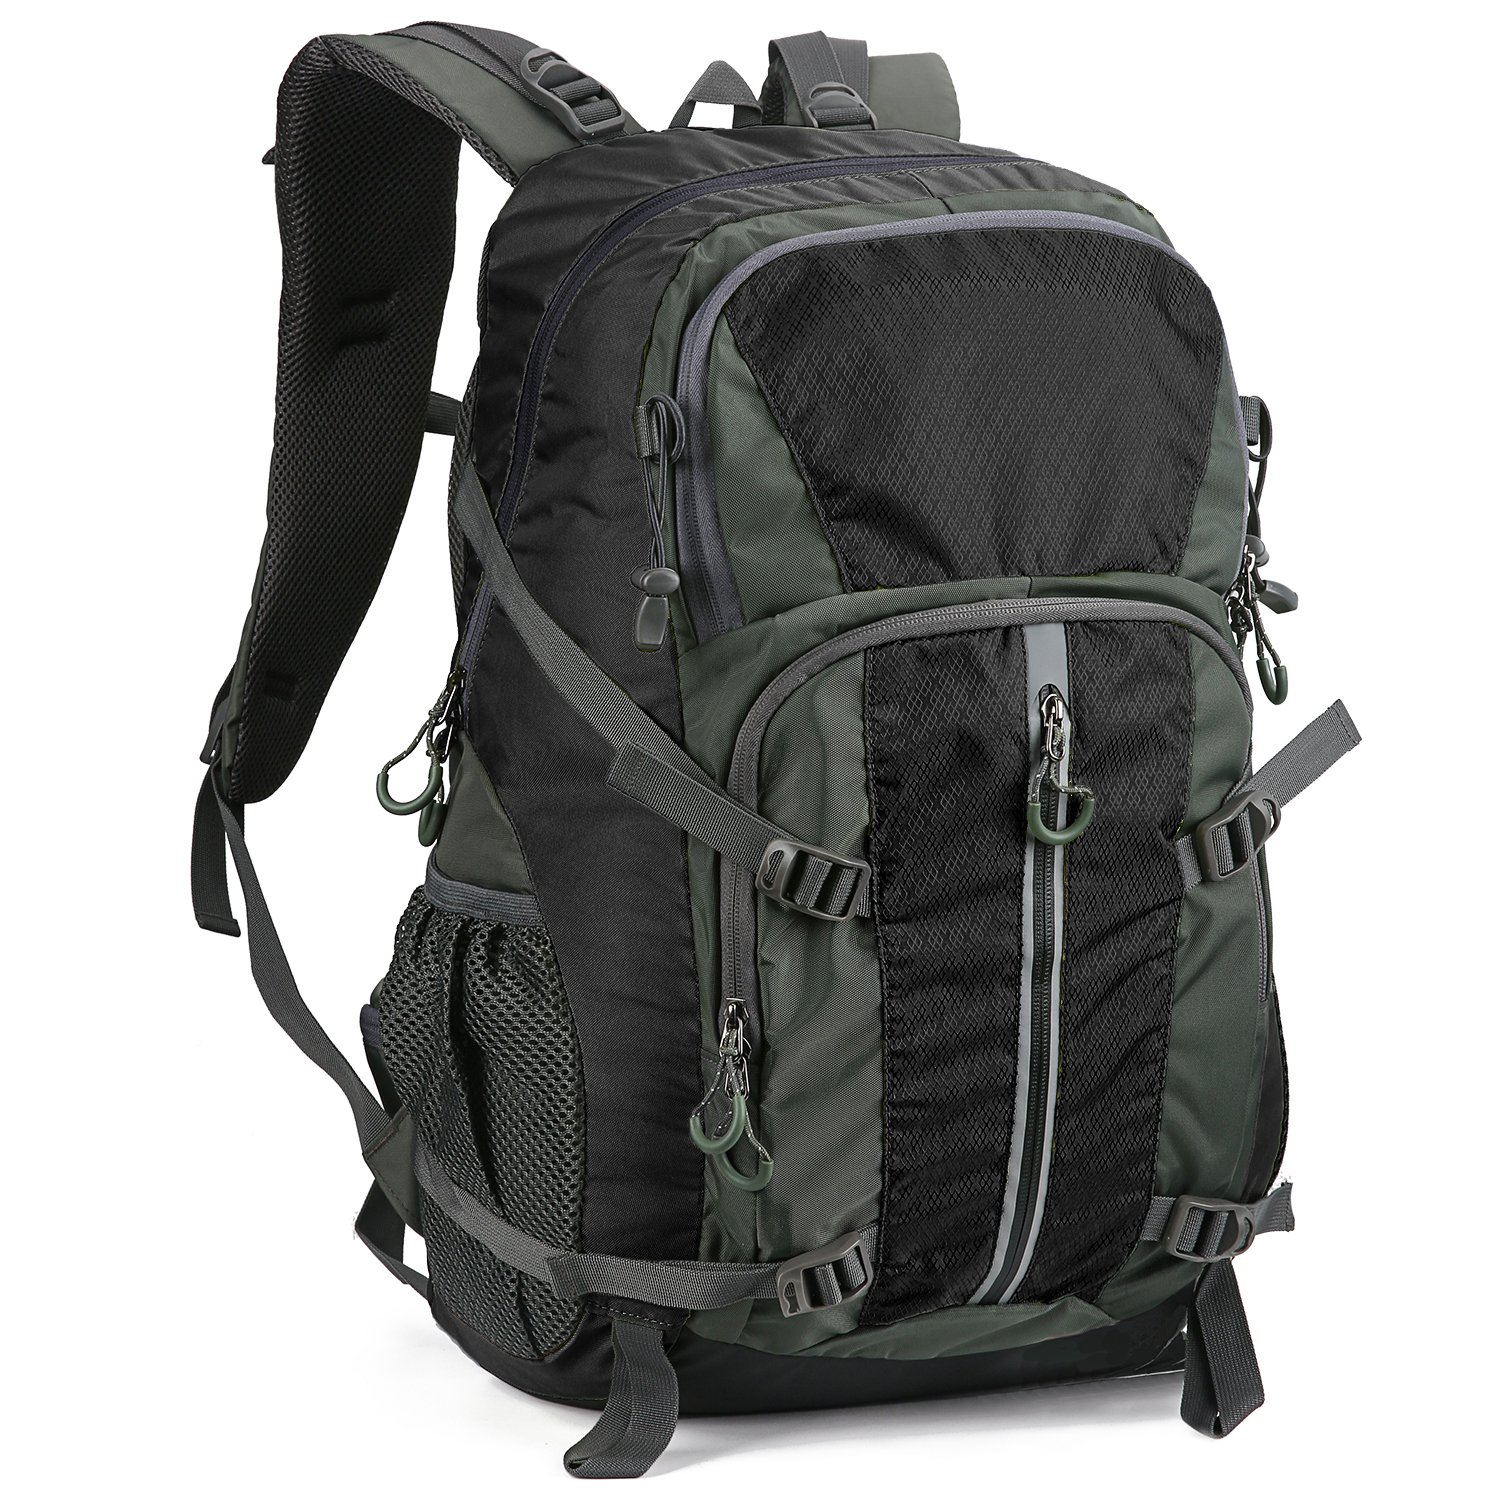 Hiking Backpack, Durable Travel Backpack Daypack Waterproof 40L for Hiking, Camping, Cycling, Biking, Climbing, Hunting, and Outdoor Activities Black